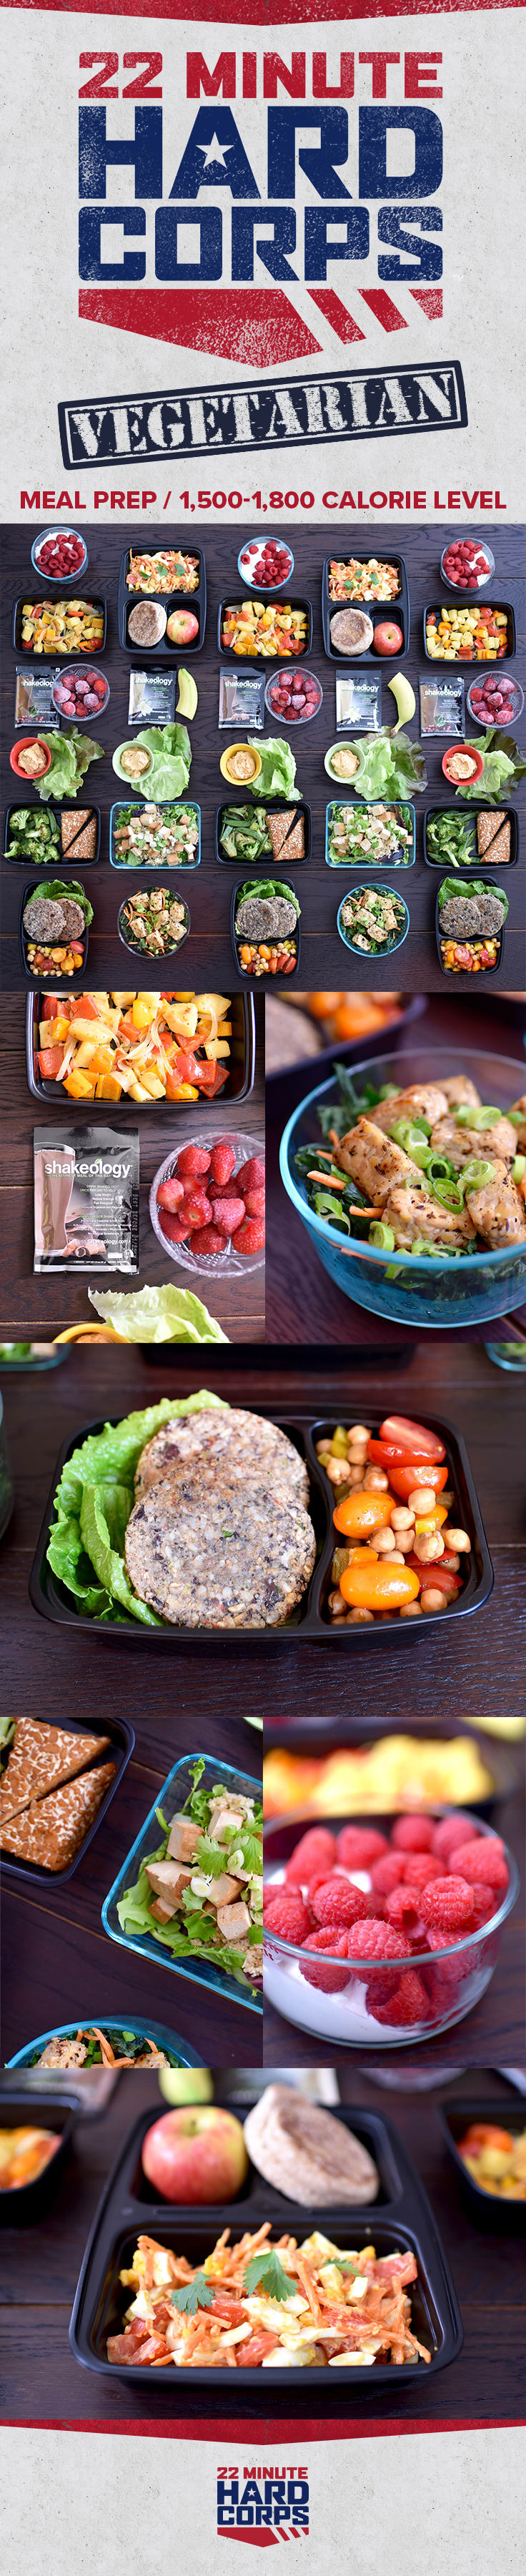 Vegetarian Meal Prep for 22 Minute Hard Corps 1,500-1,800 Calorie Level | BeachbodyBlog.com